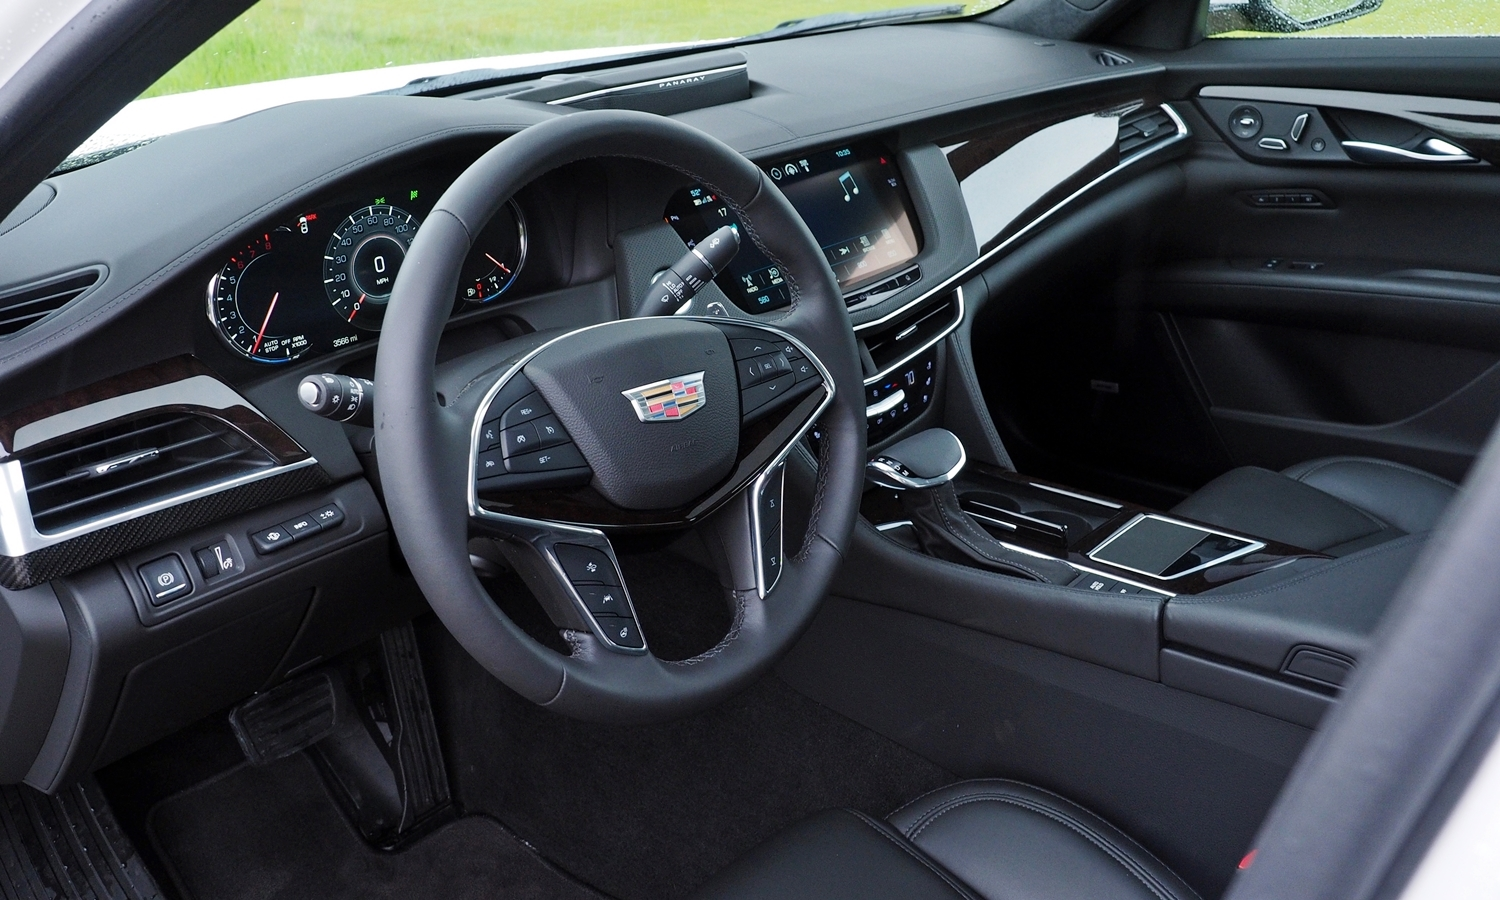 Genesis G90 Photos: Cadillac CT6 interior